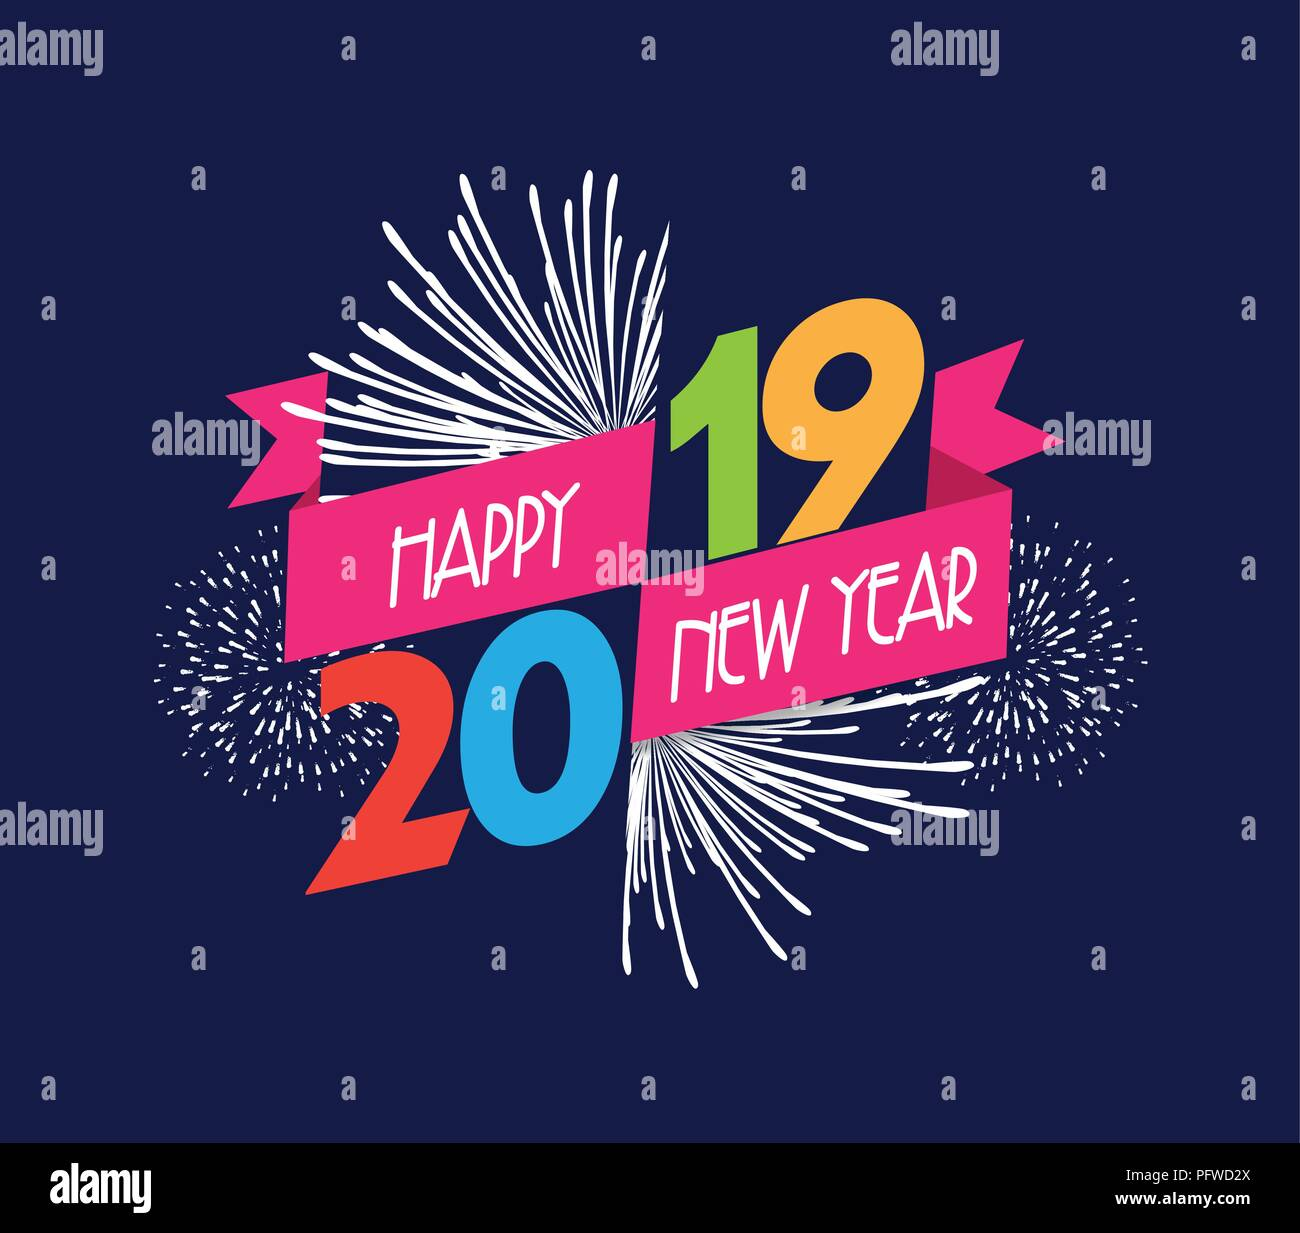 Vector illustration of fireworks. Happy new year 2019 background - Stock Vector